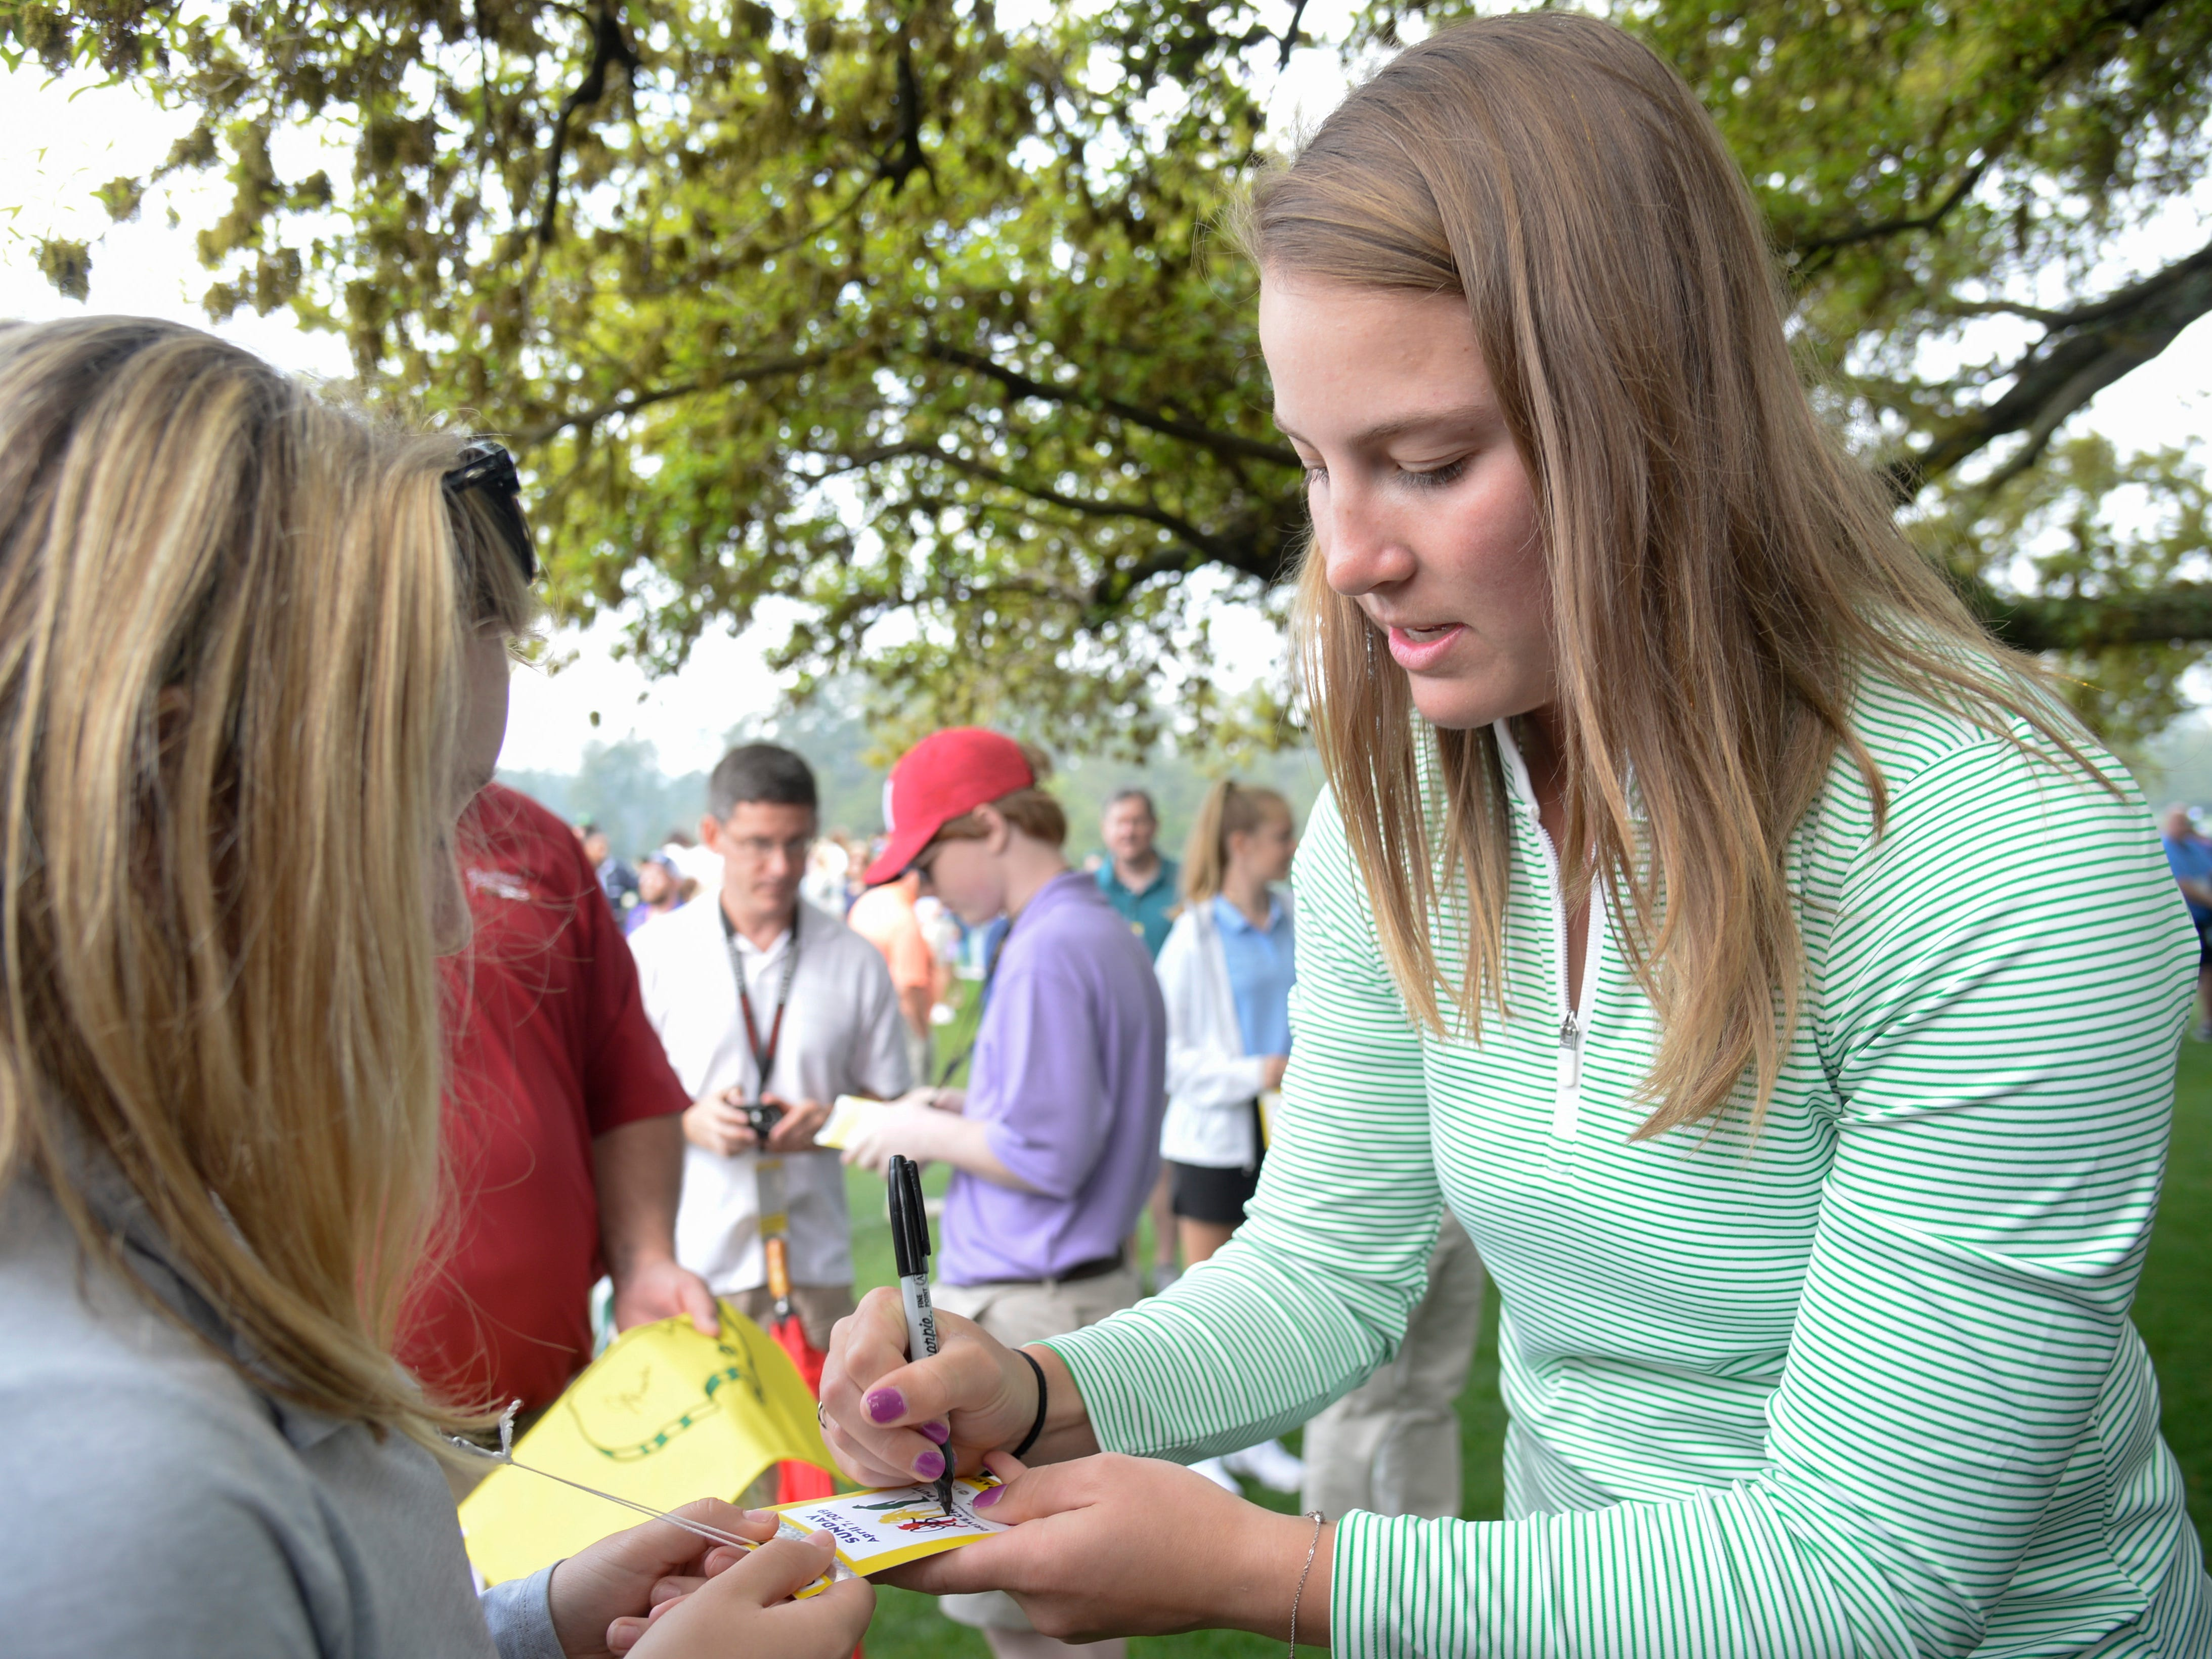 Augusta National Womens Amateur champion Jennifer Kupcho (right) signs autographs during the finals of the Drive, Chip and Putt competition at Augusta National Golf Club.